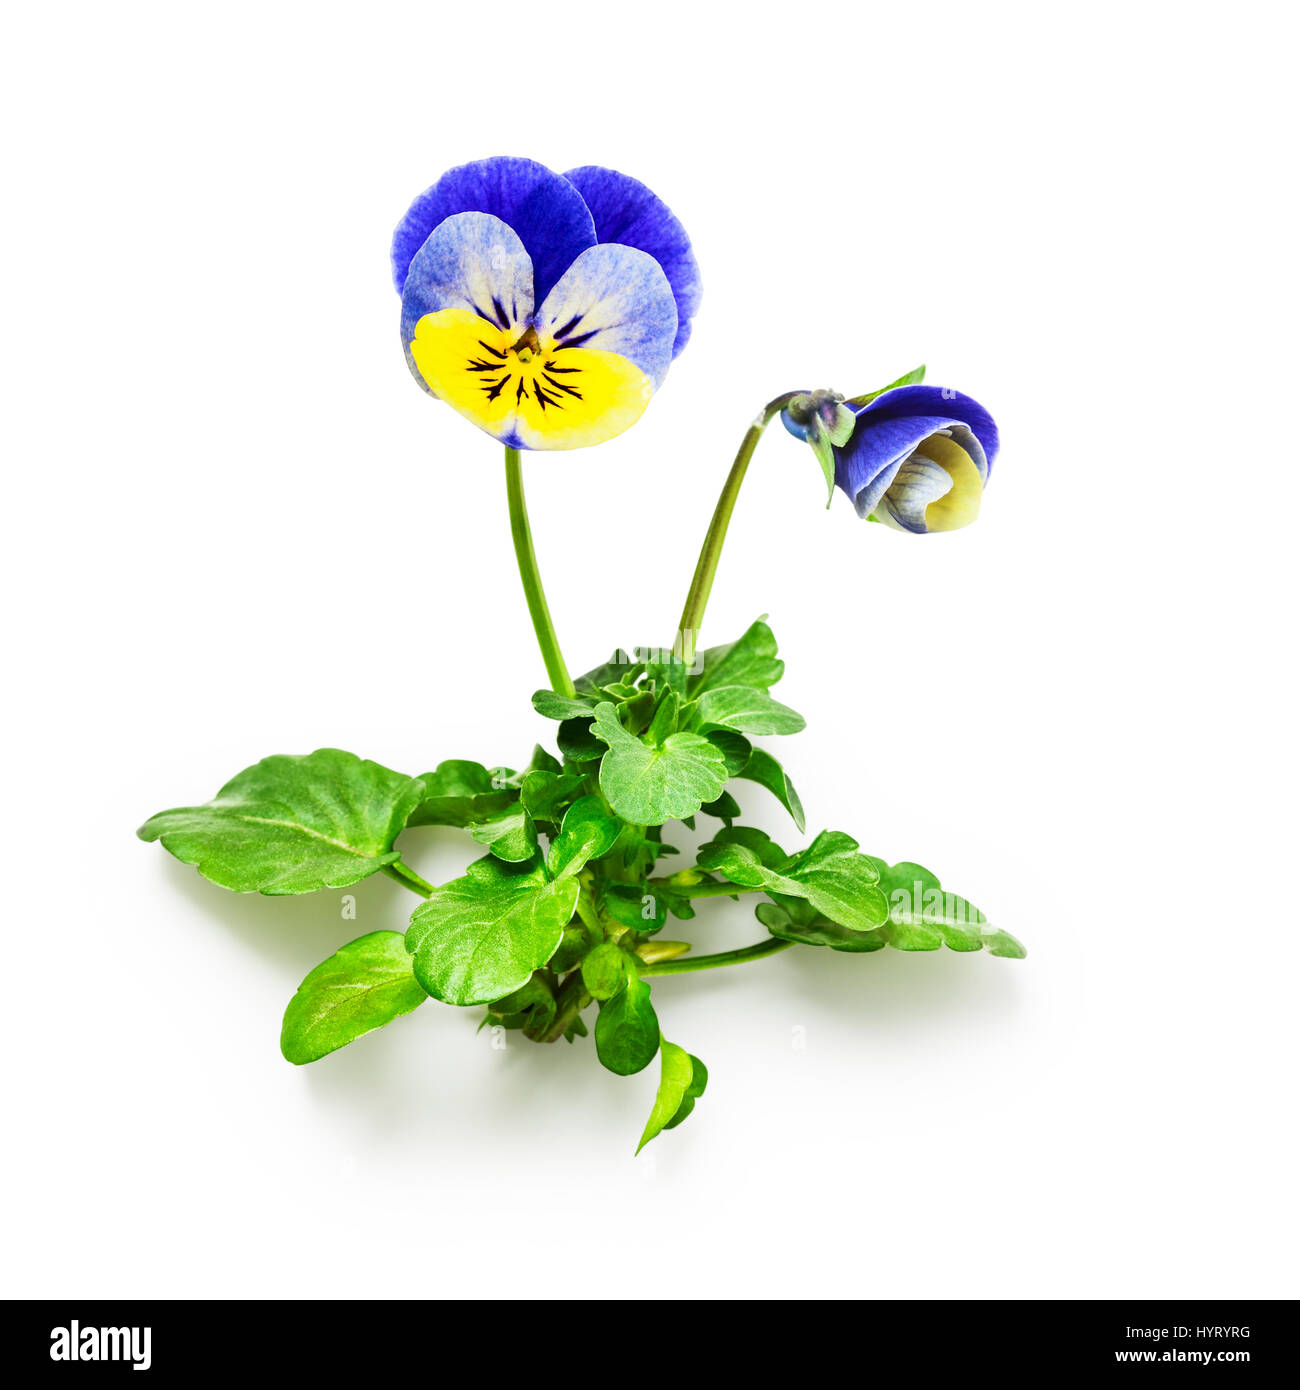 Pansy flowers with leaves isolated on white background clipping path pansy flowers with leaves isolated on white background clipping path included spring garden viola tricolor mightylinksfo